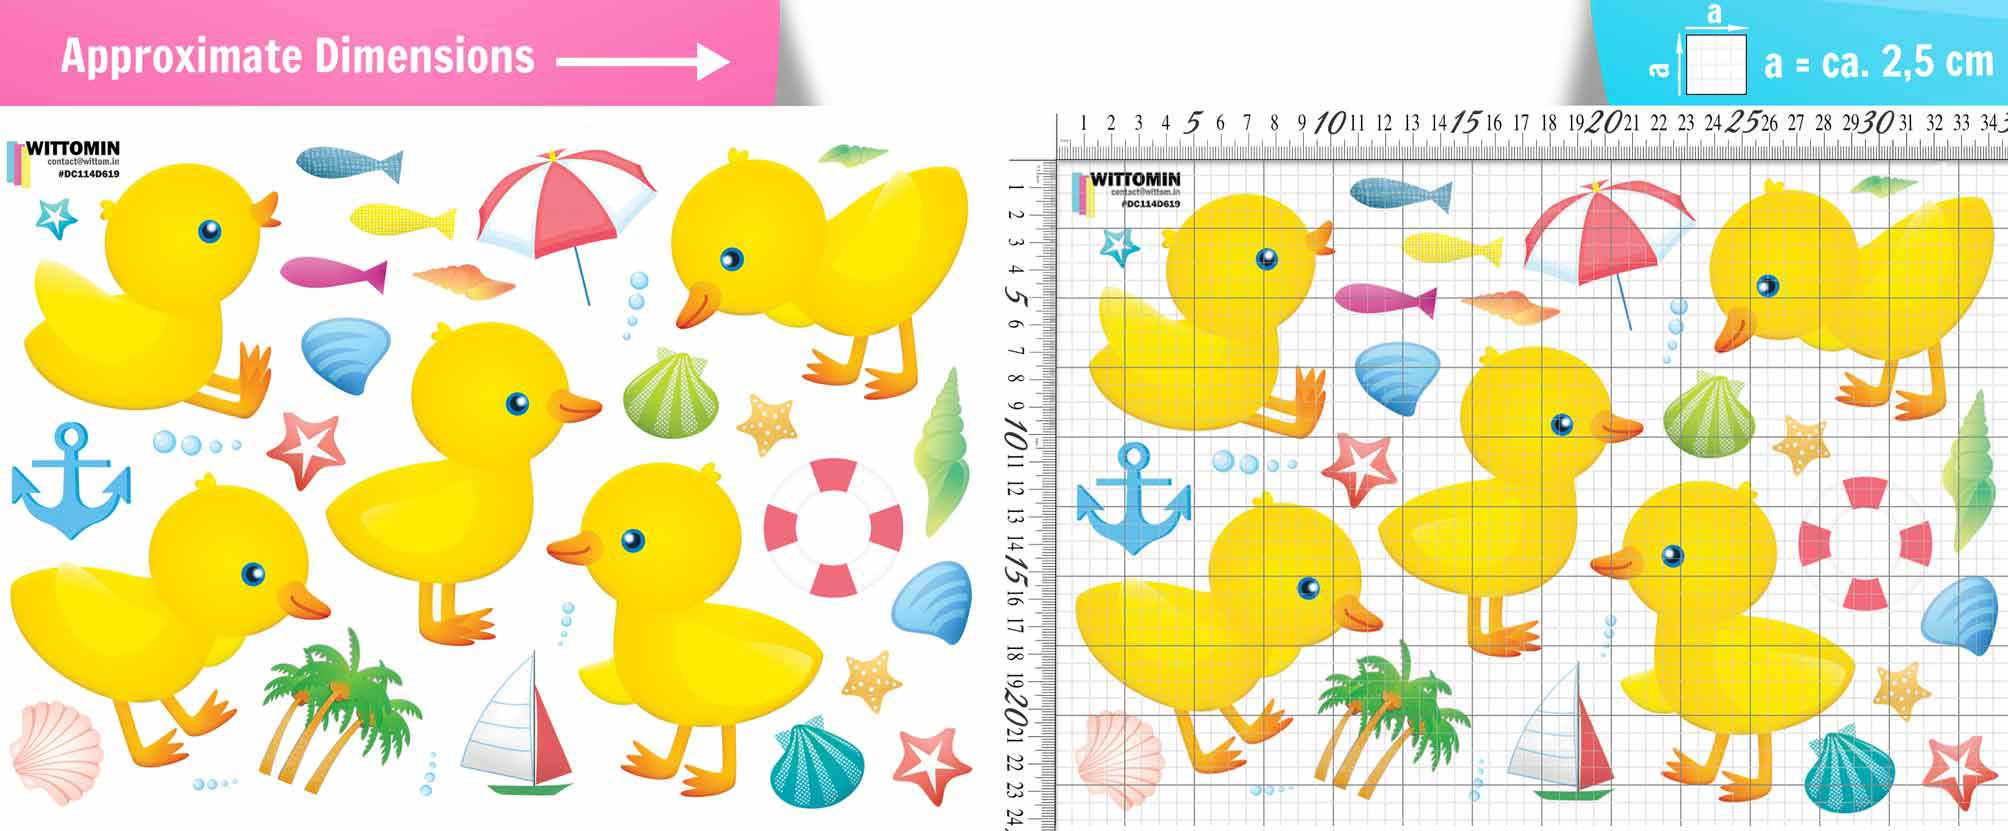 Ducks for children - bathing fun sticker set from Wittomin